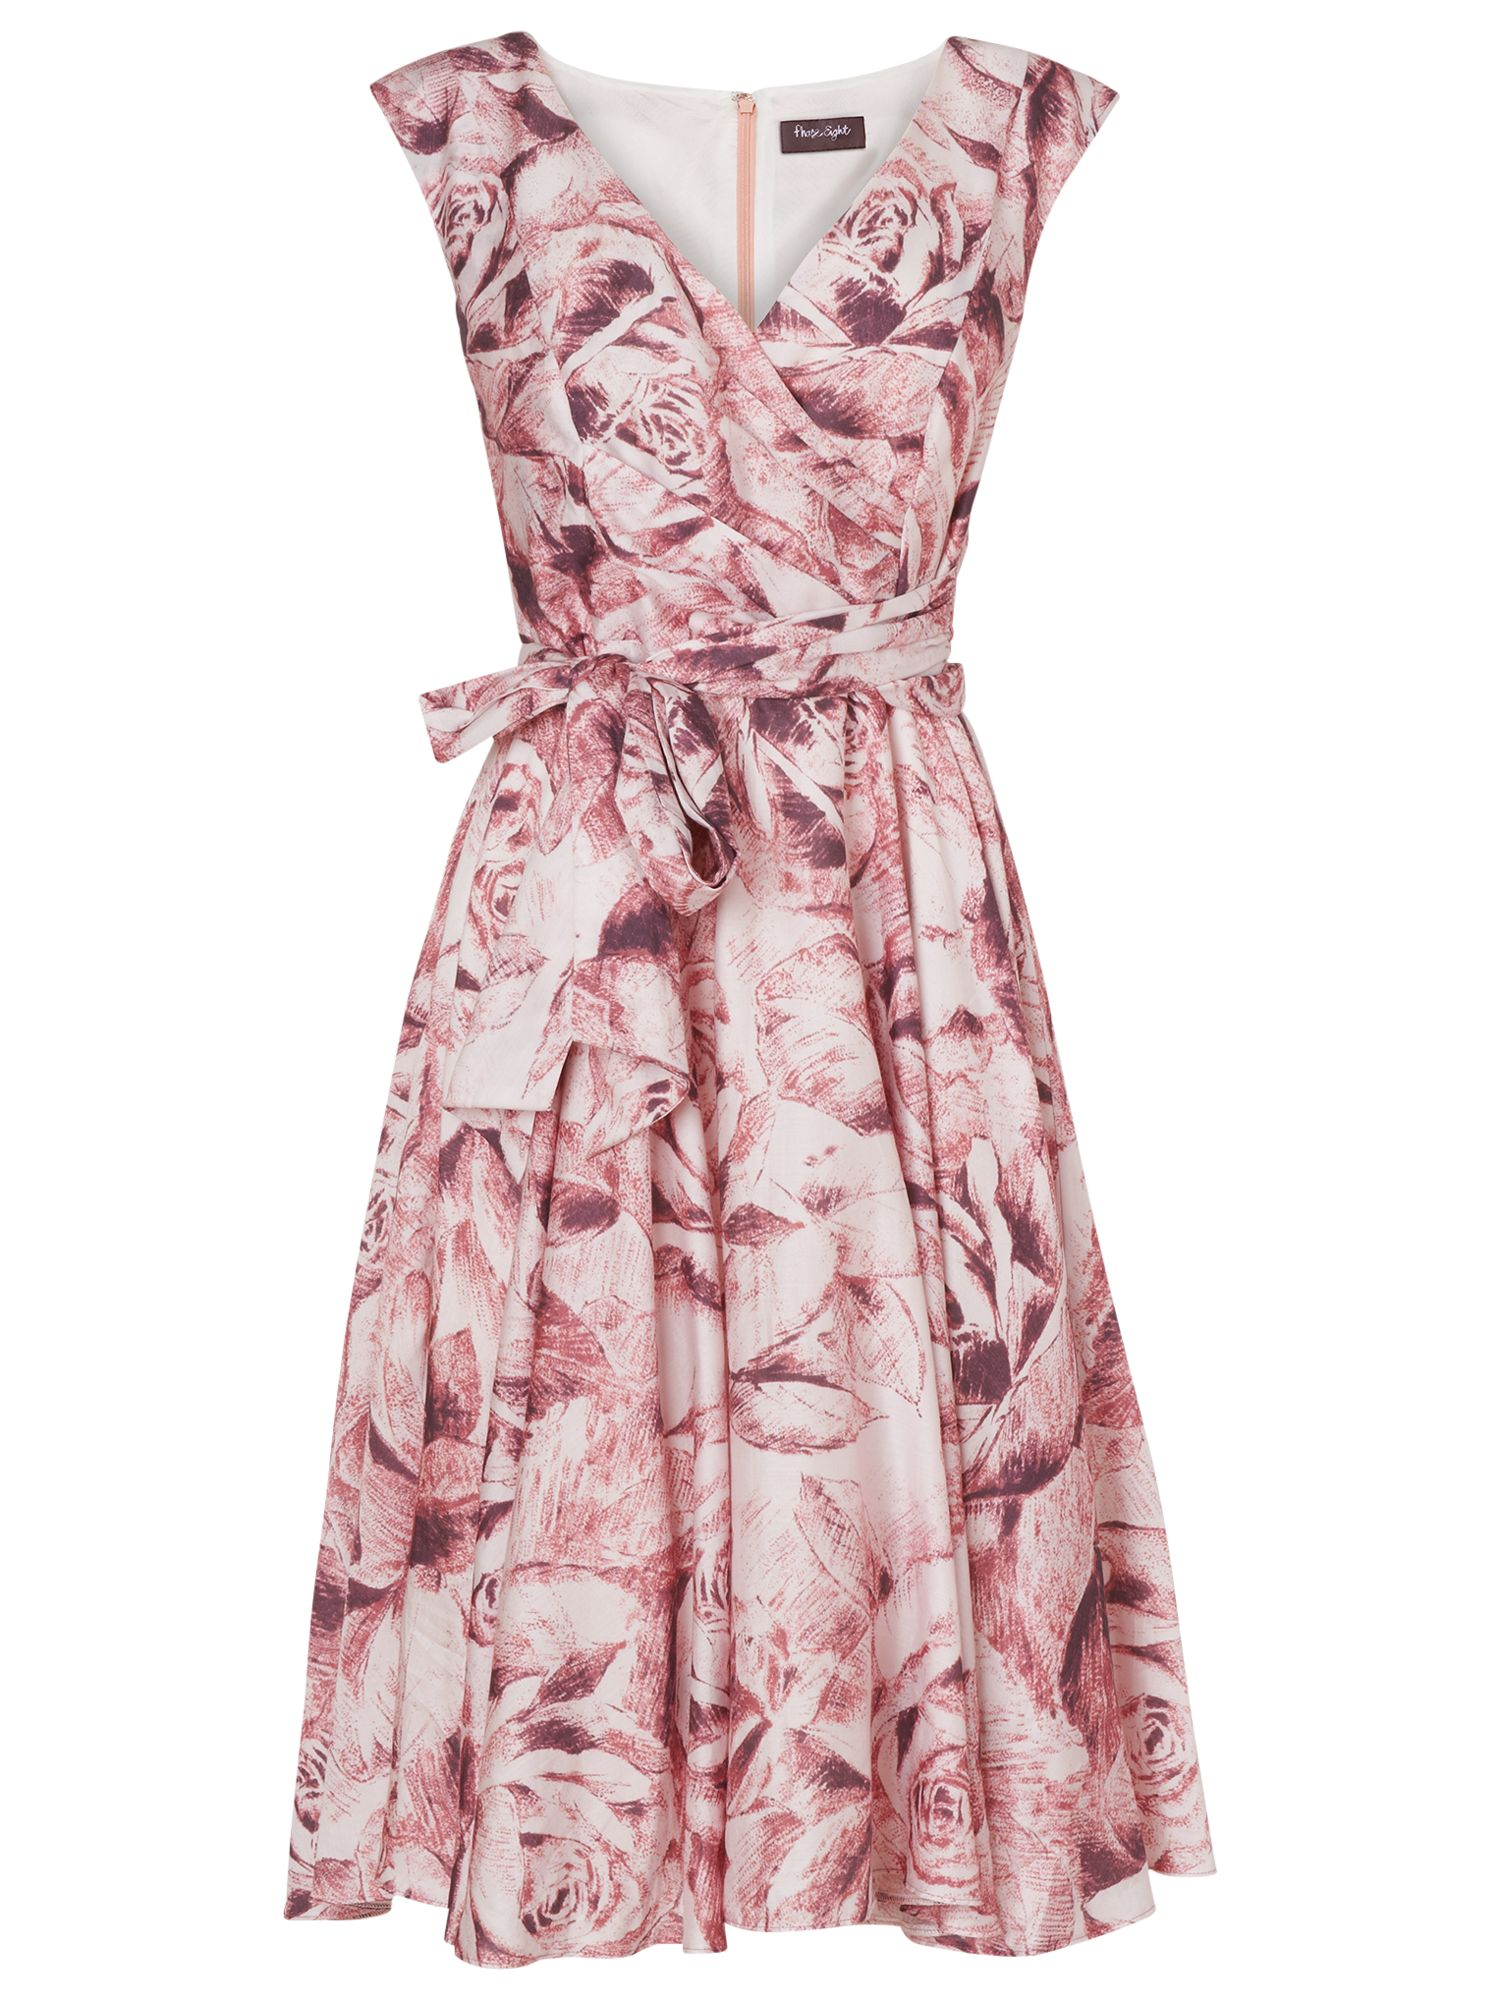 phase eight edita rose cotton dress confetti, phase, eight, edita, rose, cotton, dress, confetti, phase eight, 16|14, women, womens dresses, special offers, womenswear offers, latest reductions, womens dresses offers, gifts, wedding, wedding clothing, female guests, 20% off full price phase eight, fashion magazine, brands l-z, inactive womenswear, 1811452